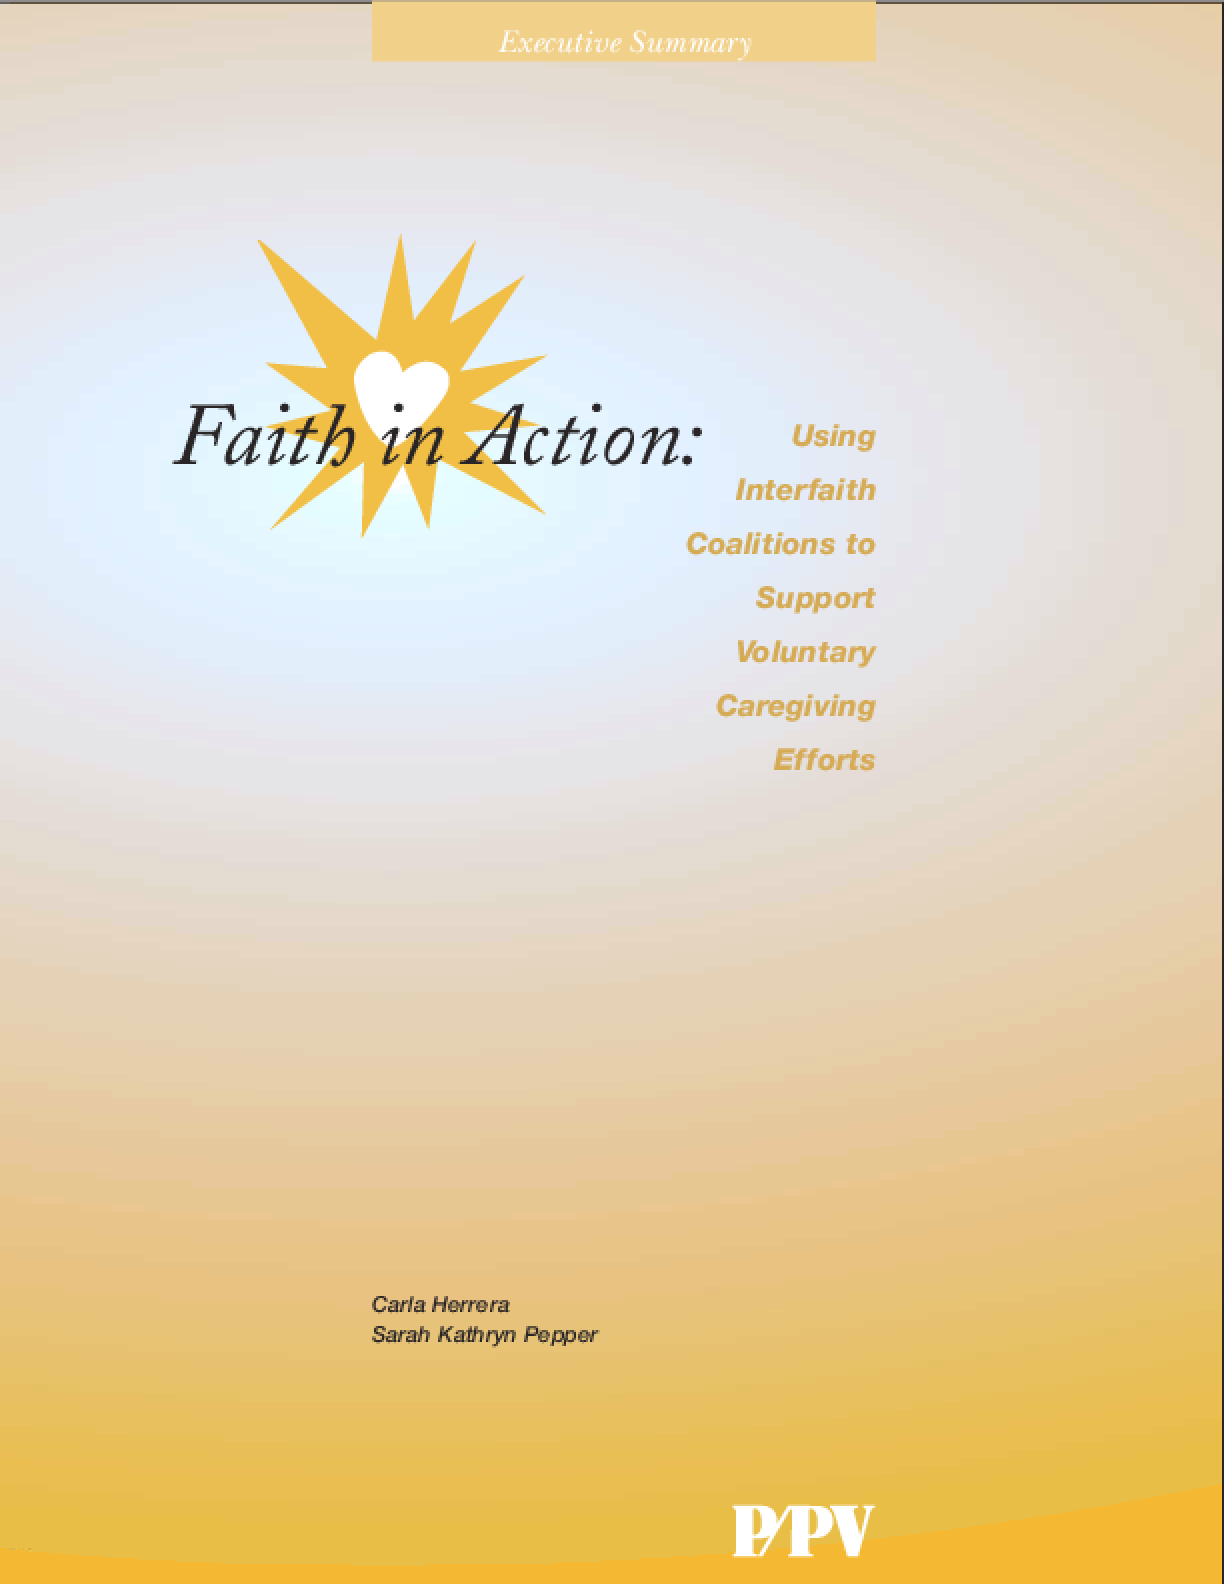 Faith in Action: Using Interfaith Coalitions to Support Voluntary Caregiving Efforts, Executive Summary